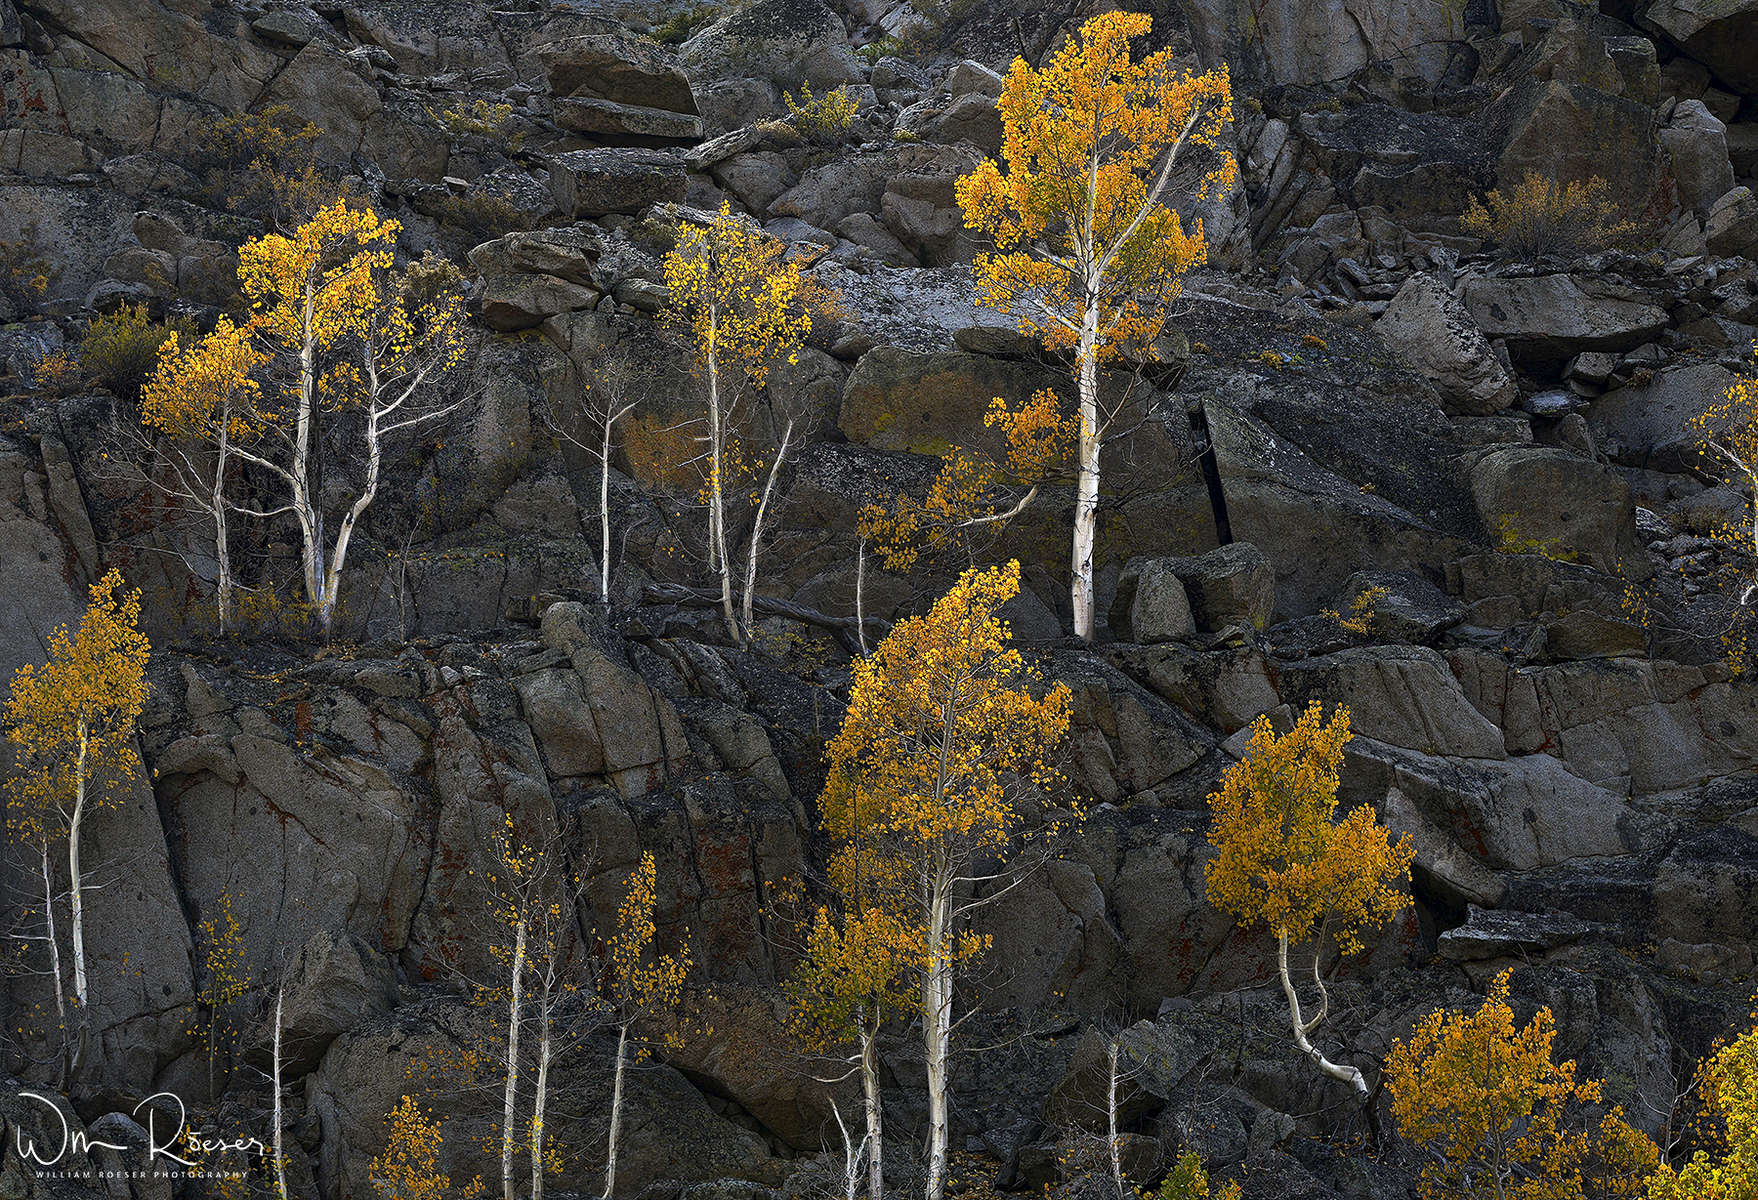 Aspen-and-Rock-for-Web-